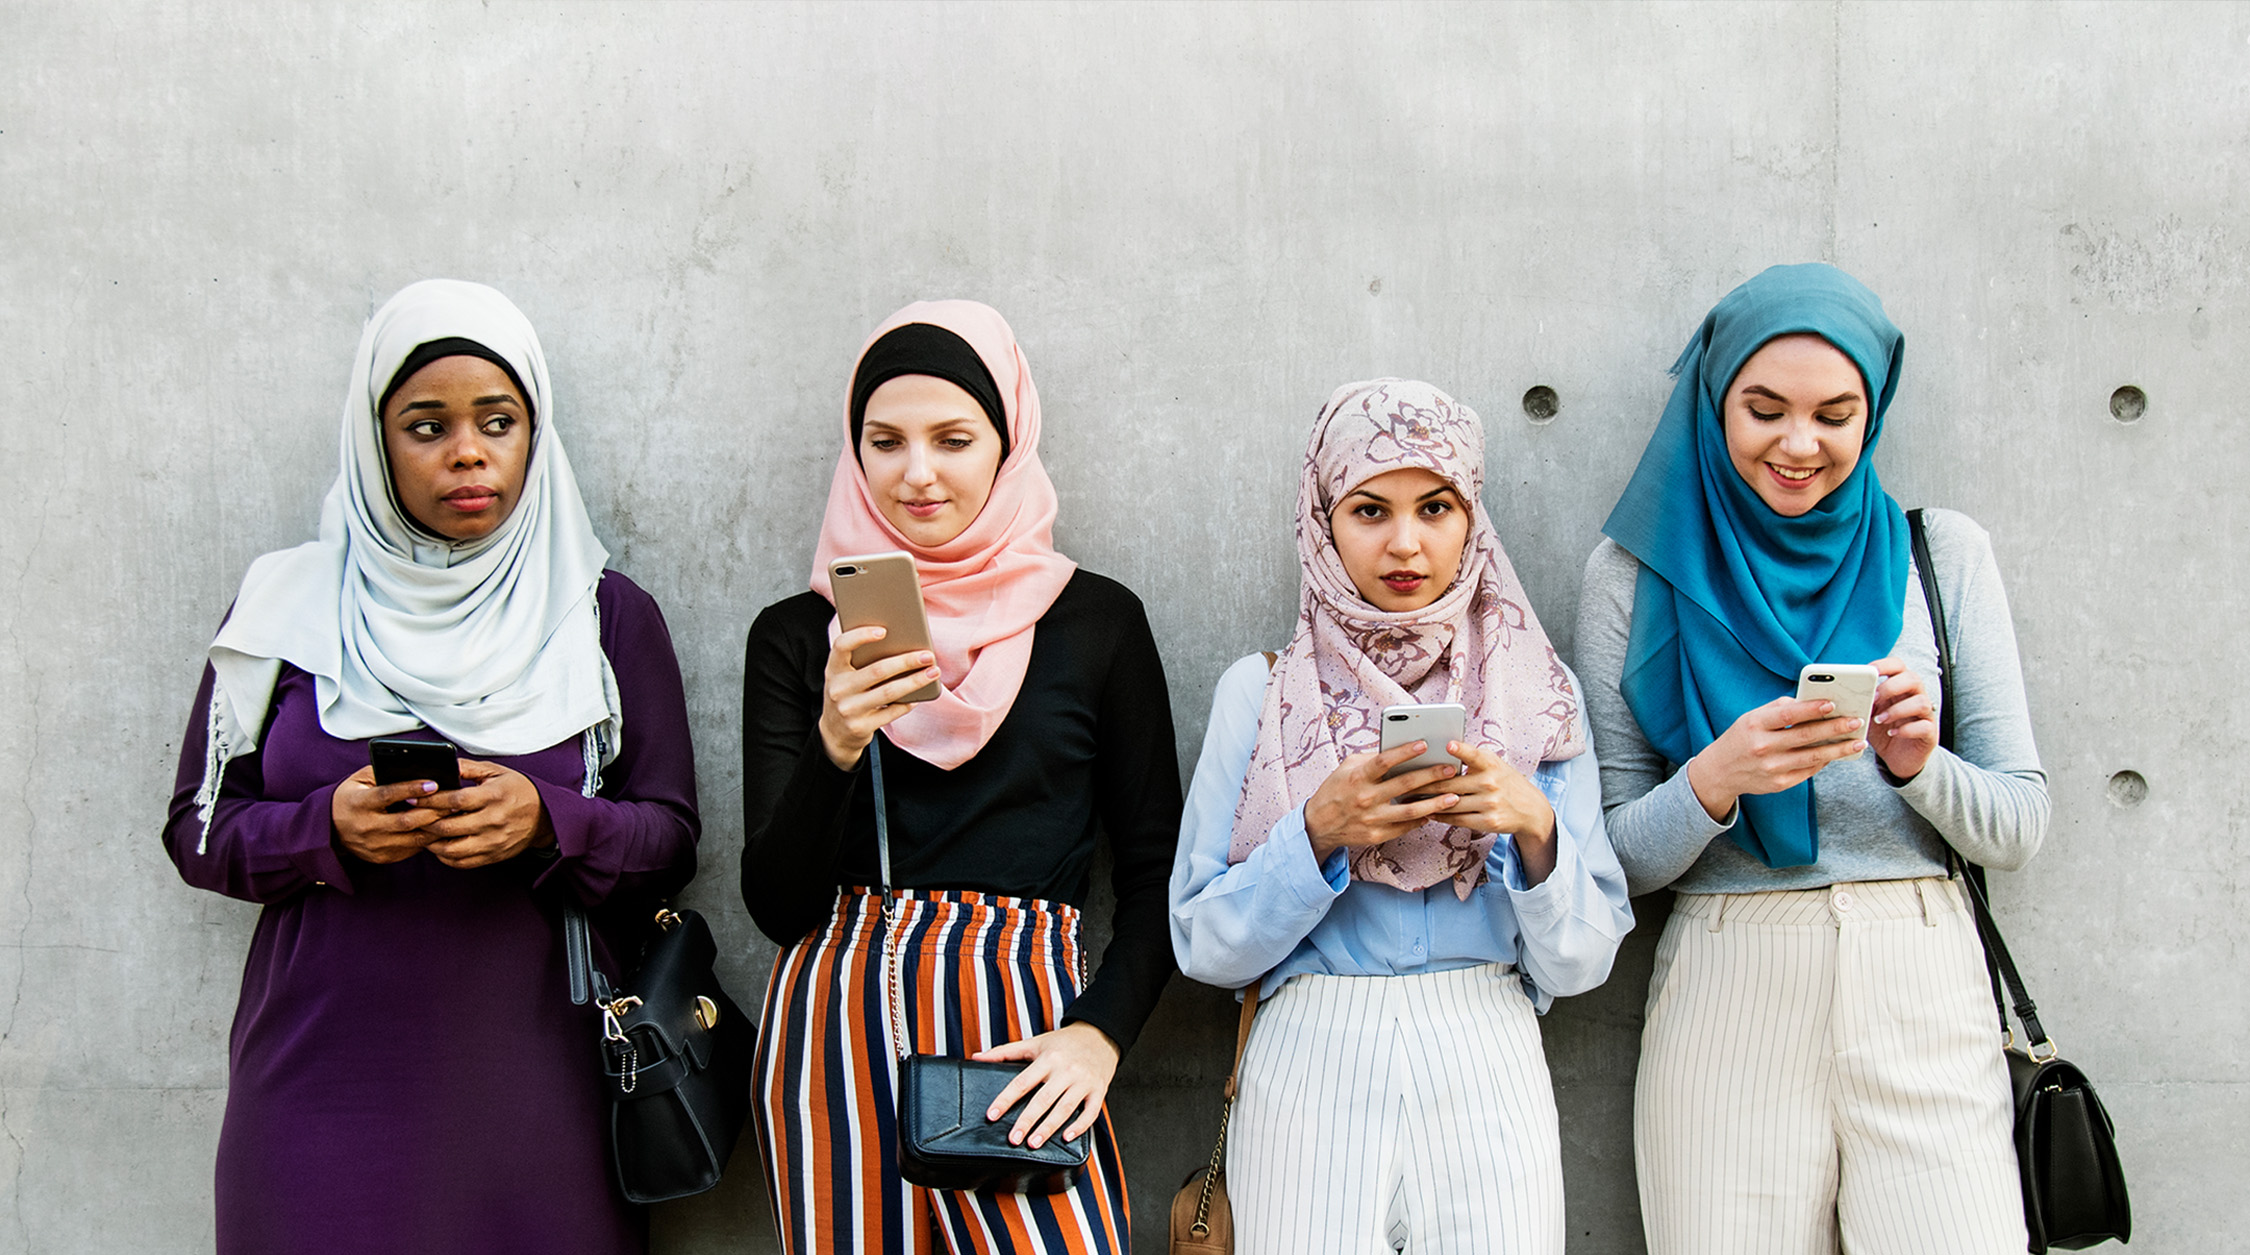 Four women using mobile phone image